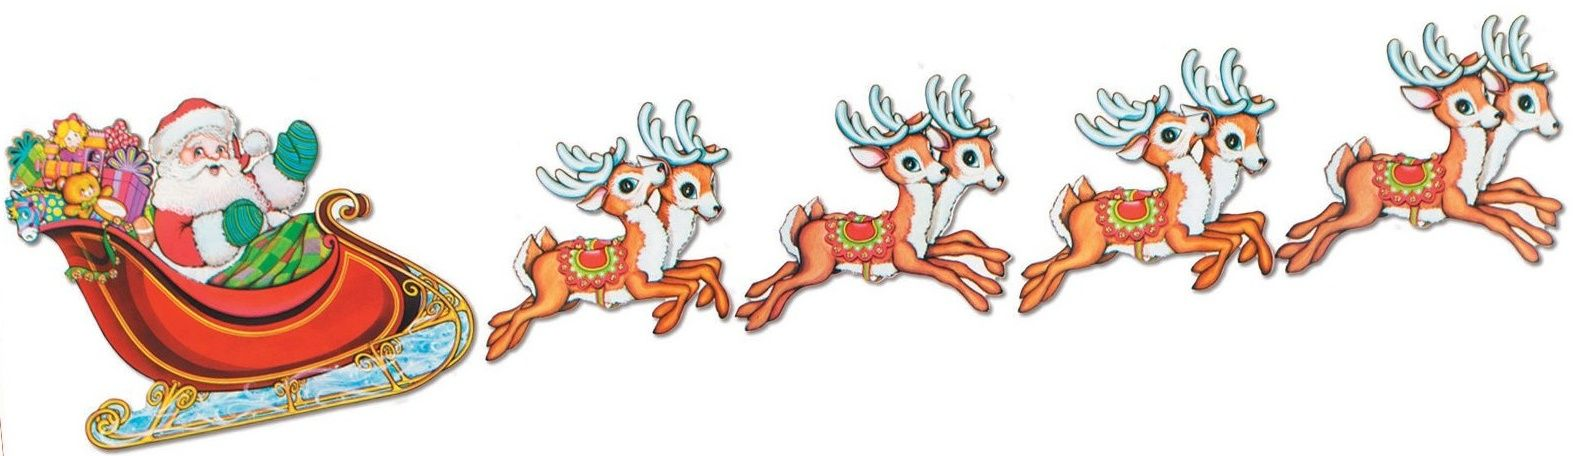 Images Of Santa And Sleigh | .